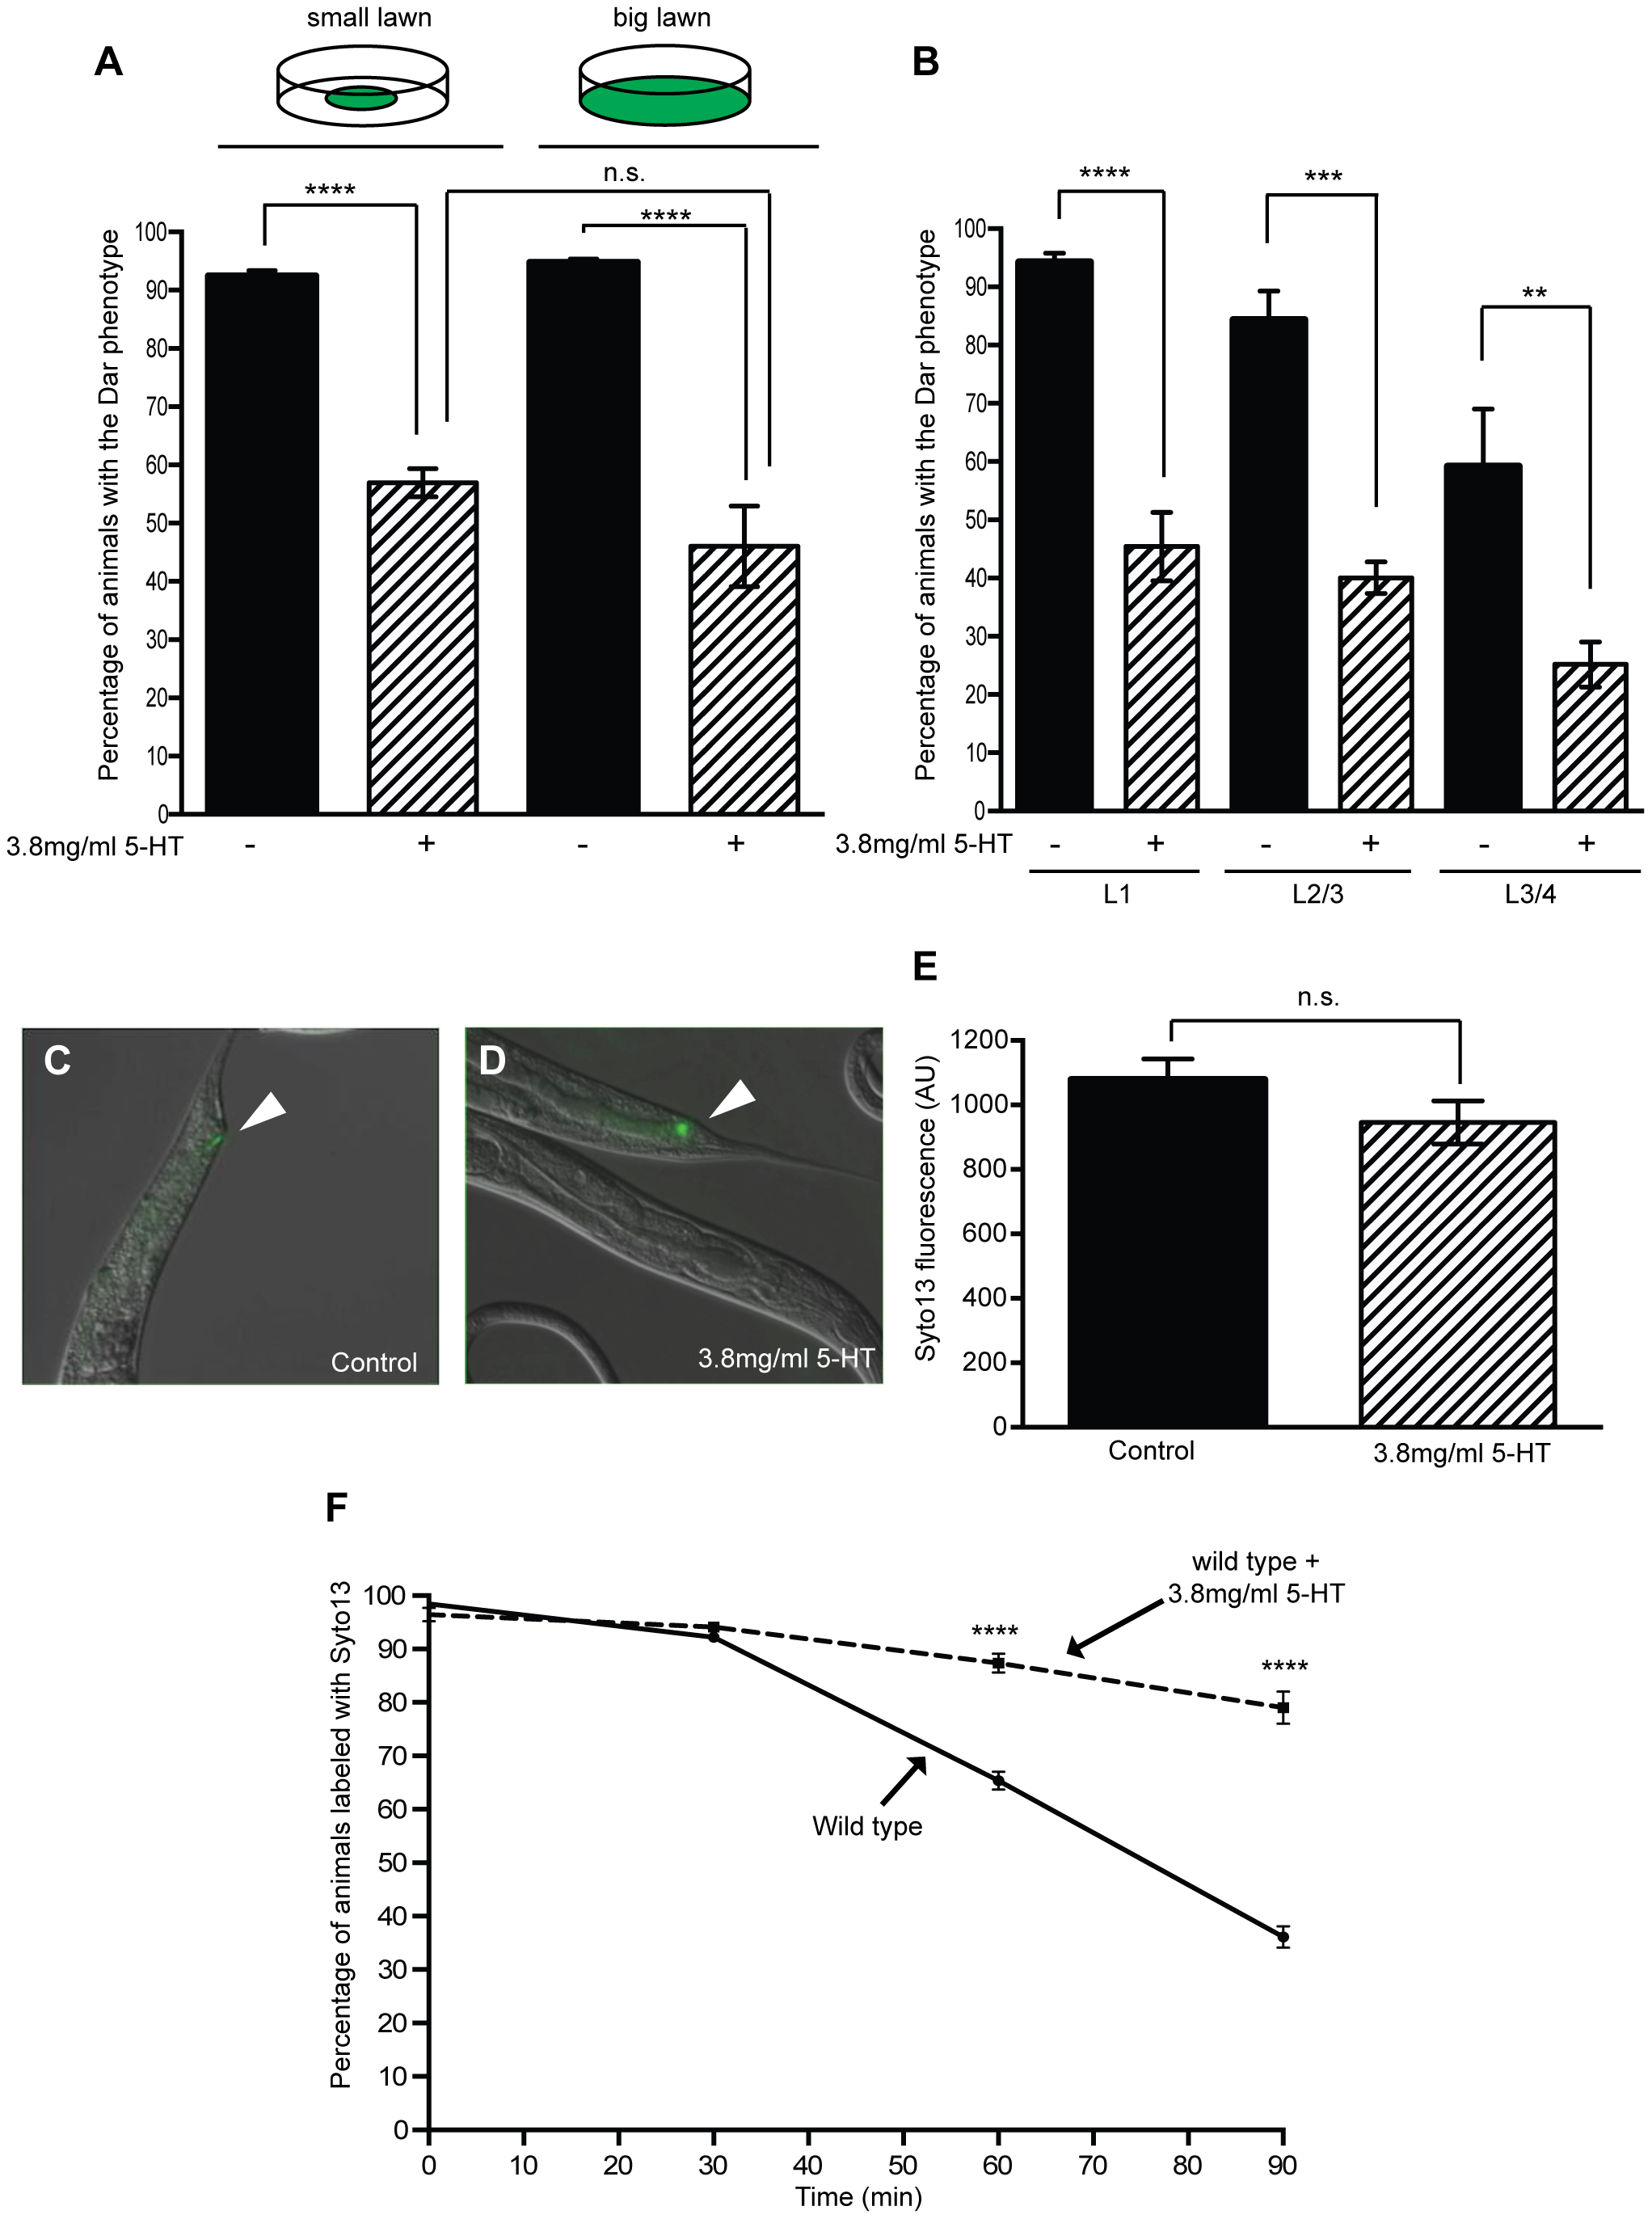 Exogenous serotonin inhibits the Dar phenotype and decreases pathogen clearance rates.